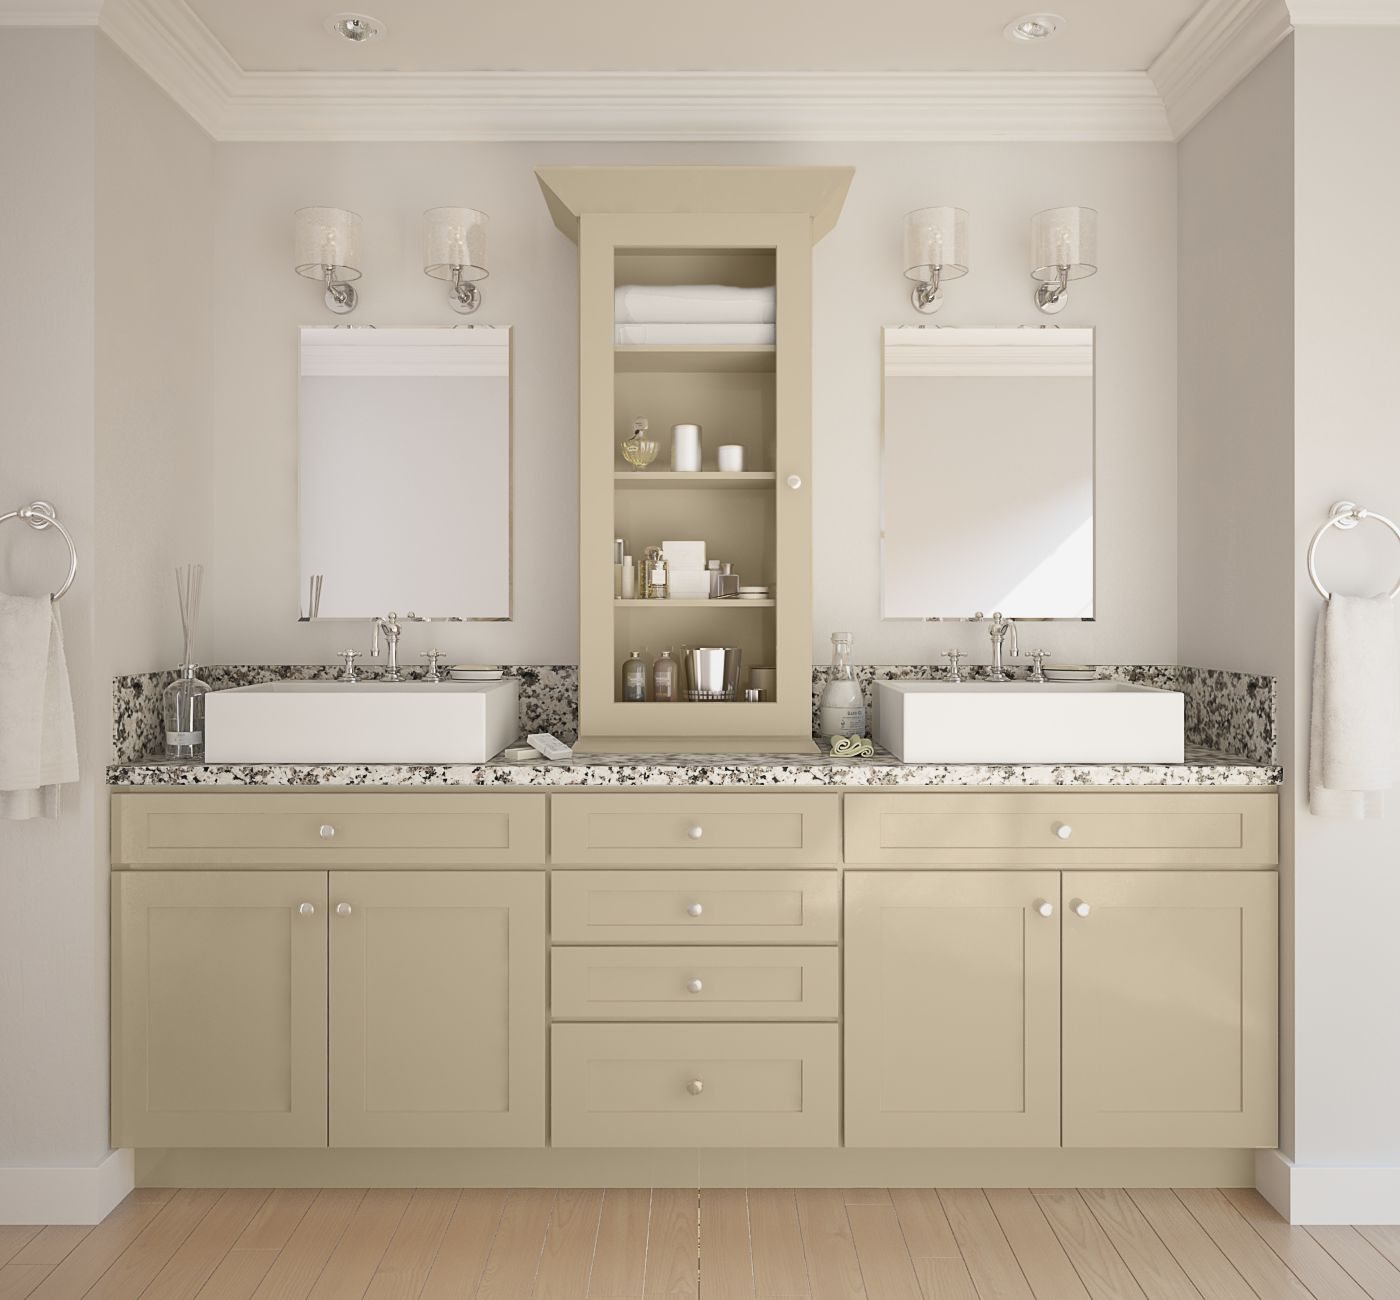 Society shaker khaki semi custom pre assembled kitchen for Pre assembled kitchen units